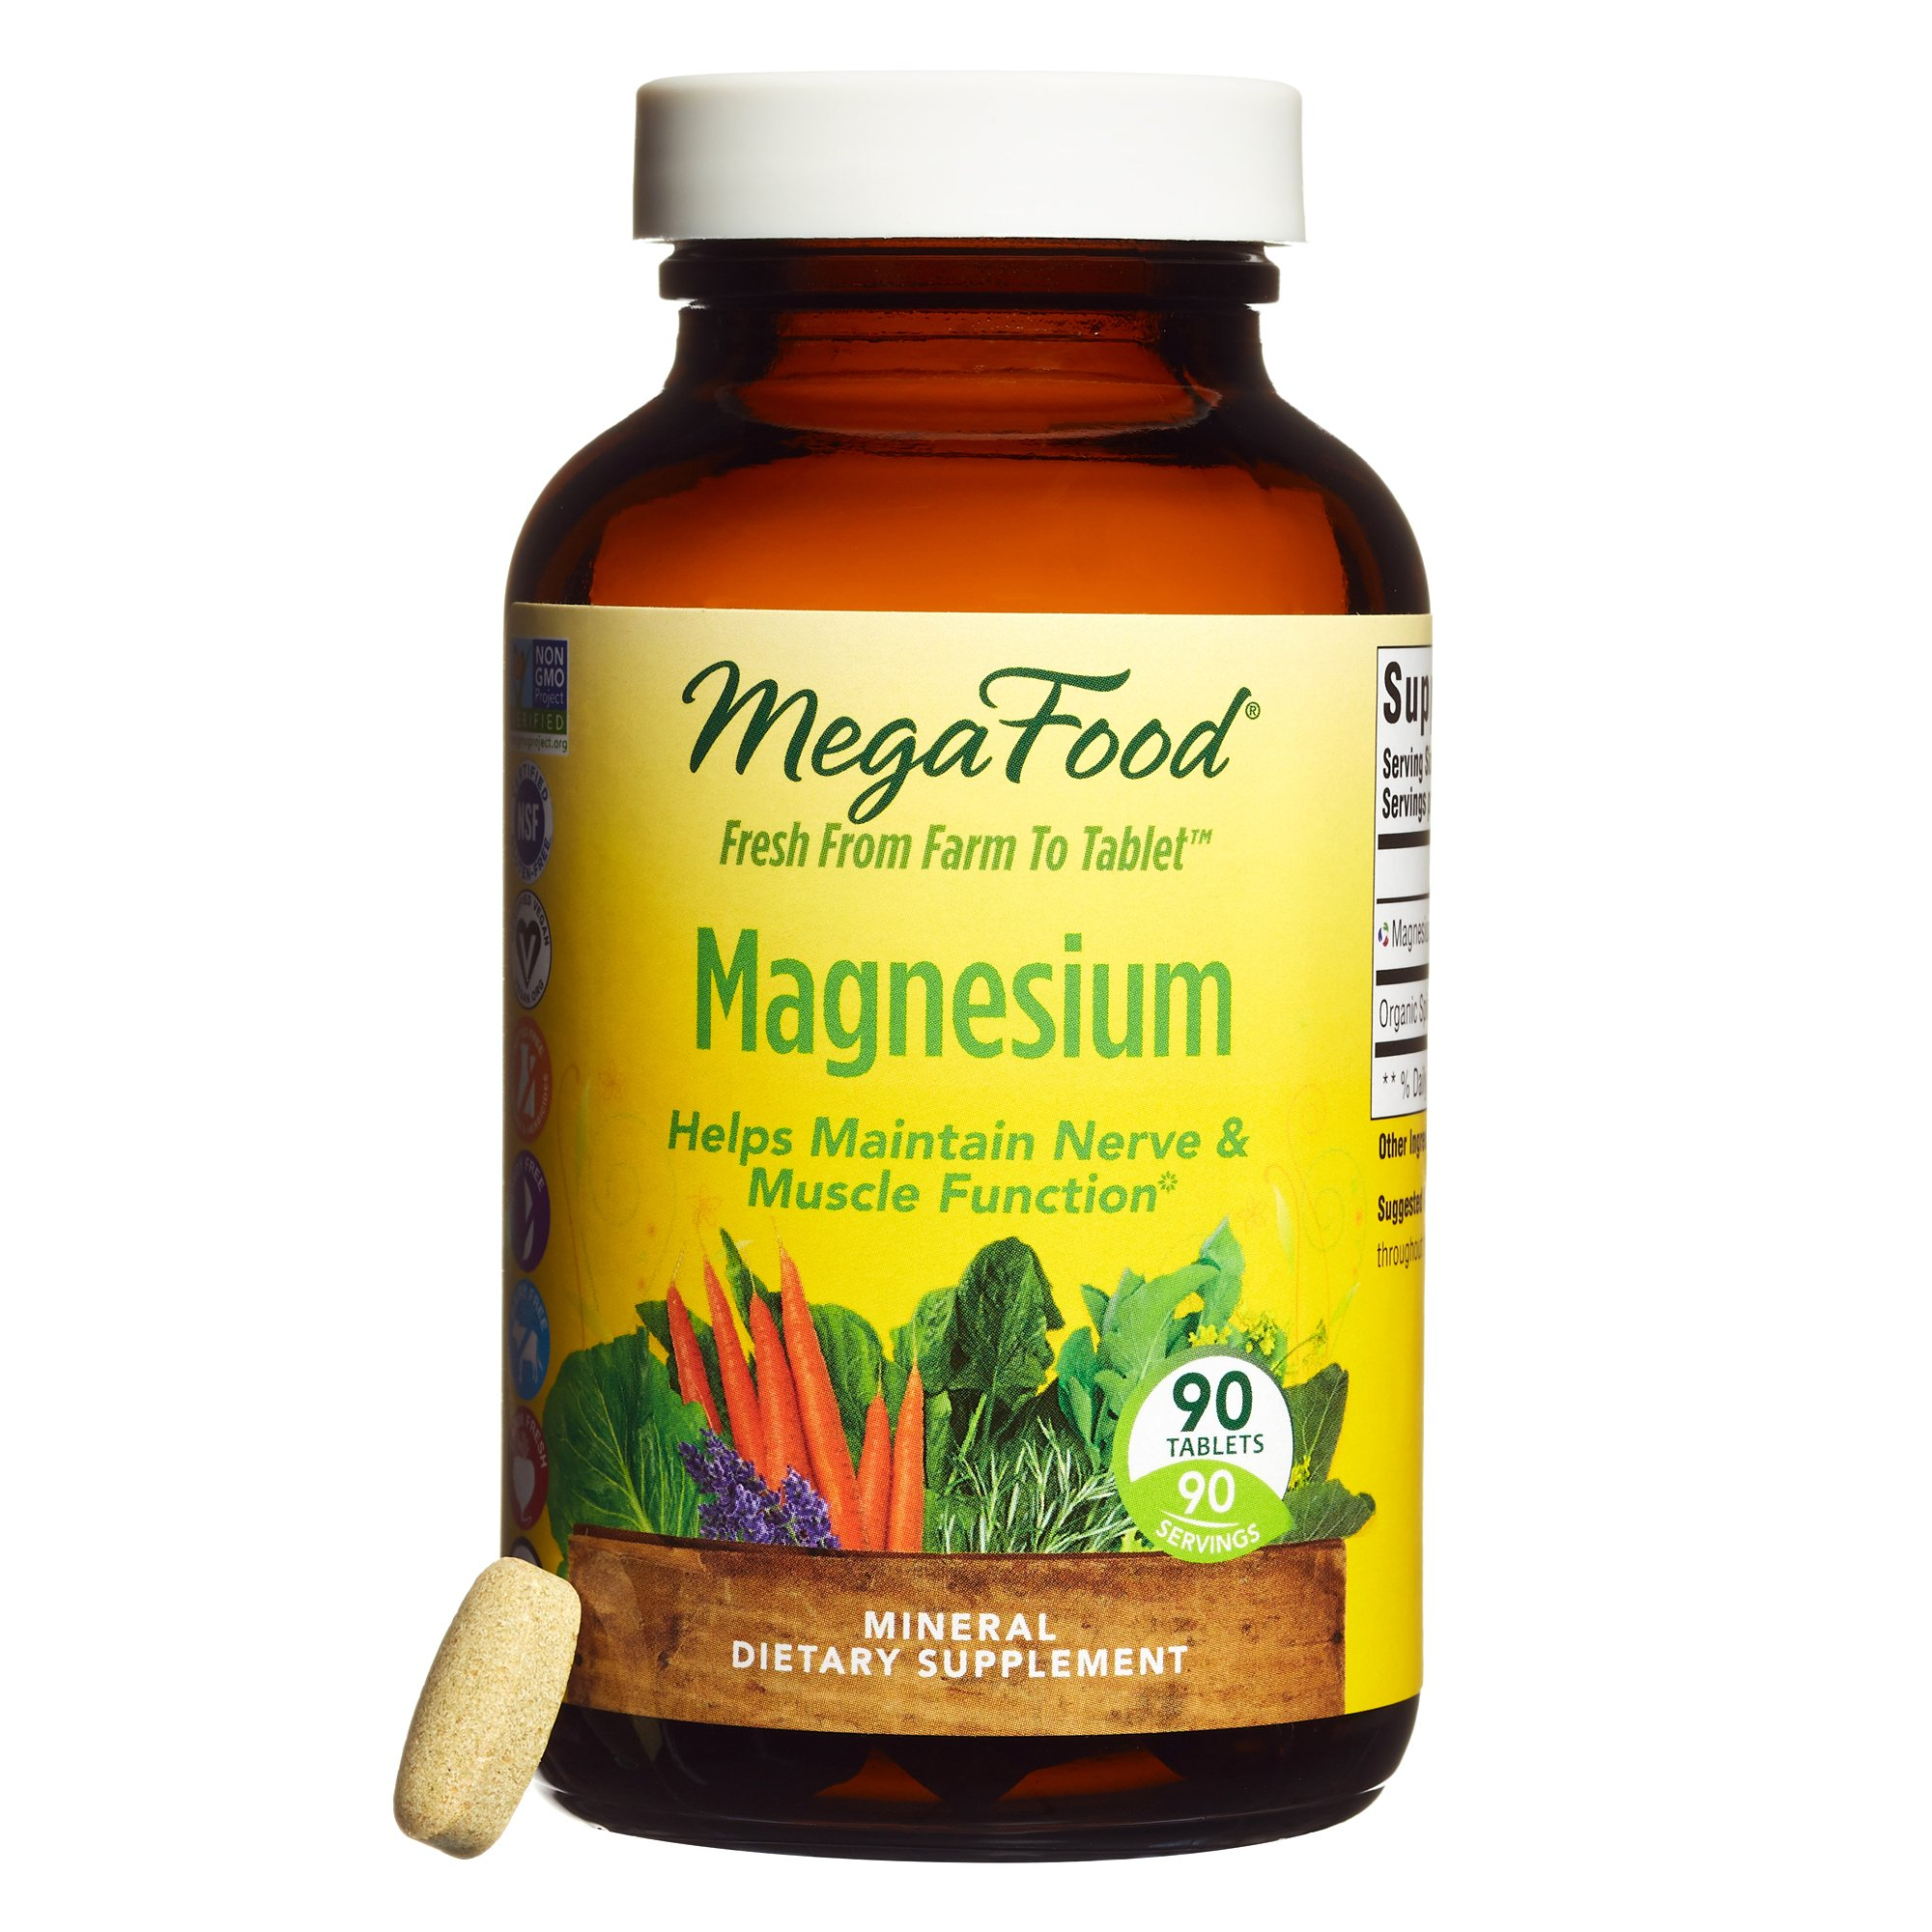 MegaFood - Magnesium, Multimineral Support for Heart, Muscle, and Nerve Health with Organic Spinach, Vegan, Gluten-Free, Non-GMO, 90 Tablets (FFP)